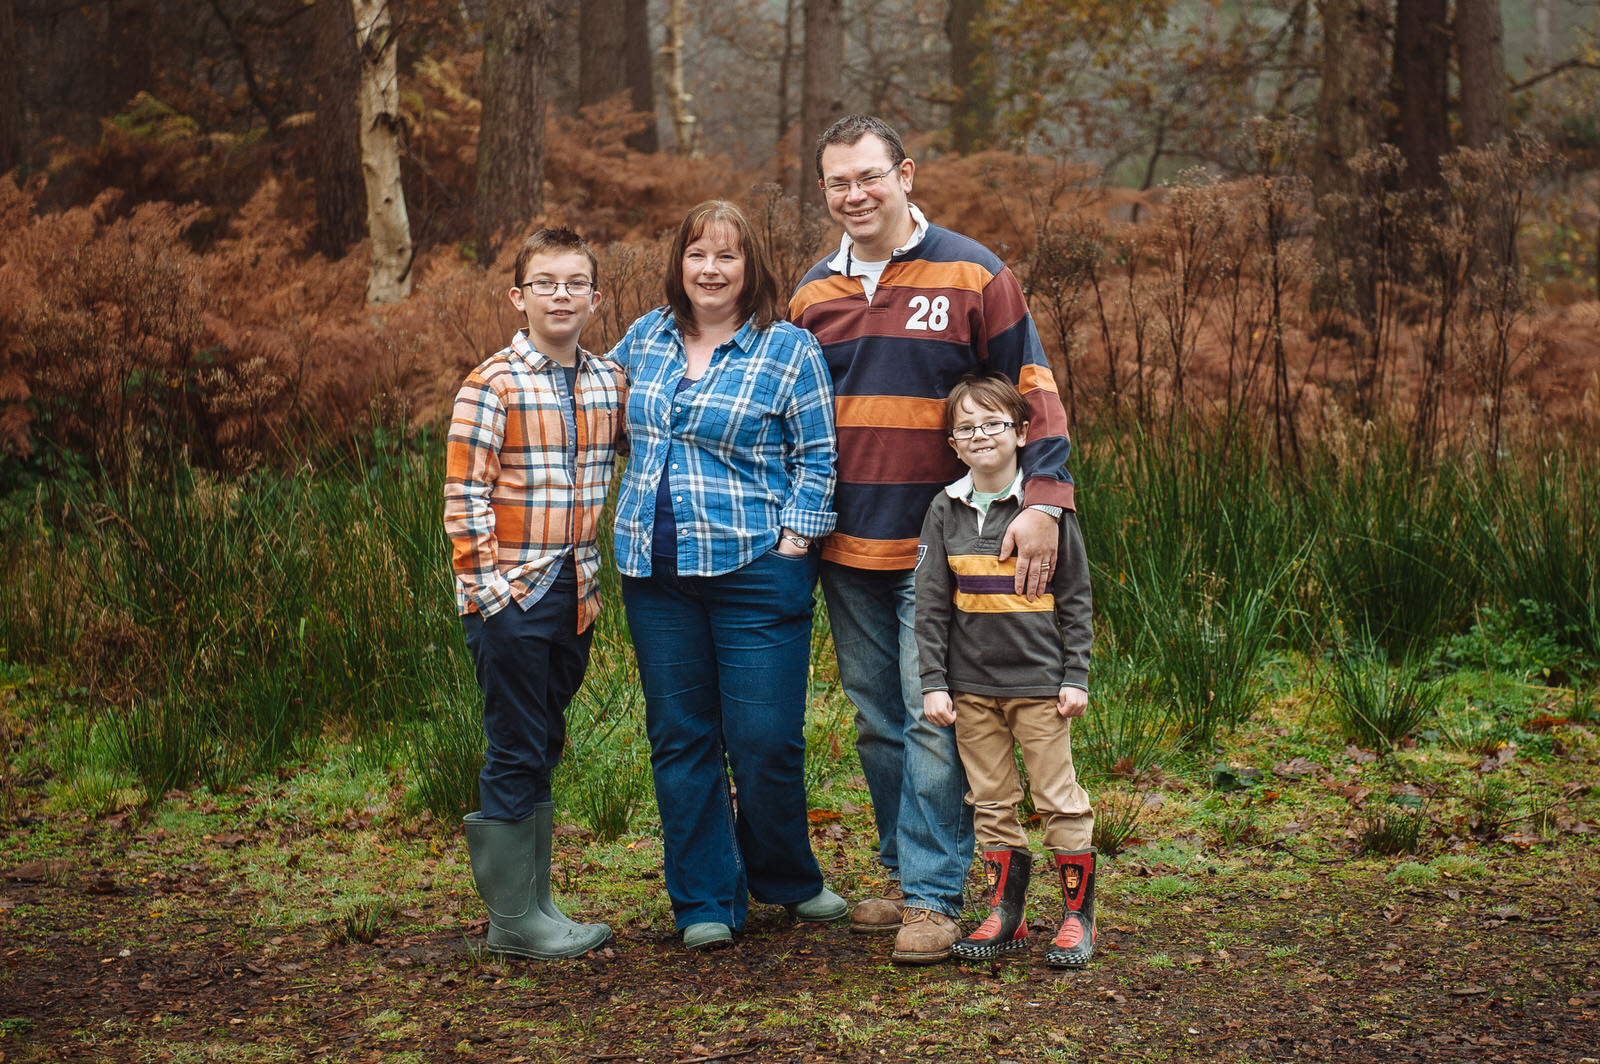 Family photography in Pulborough Sussex